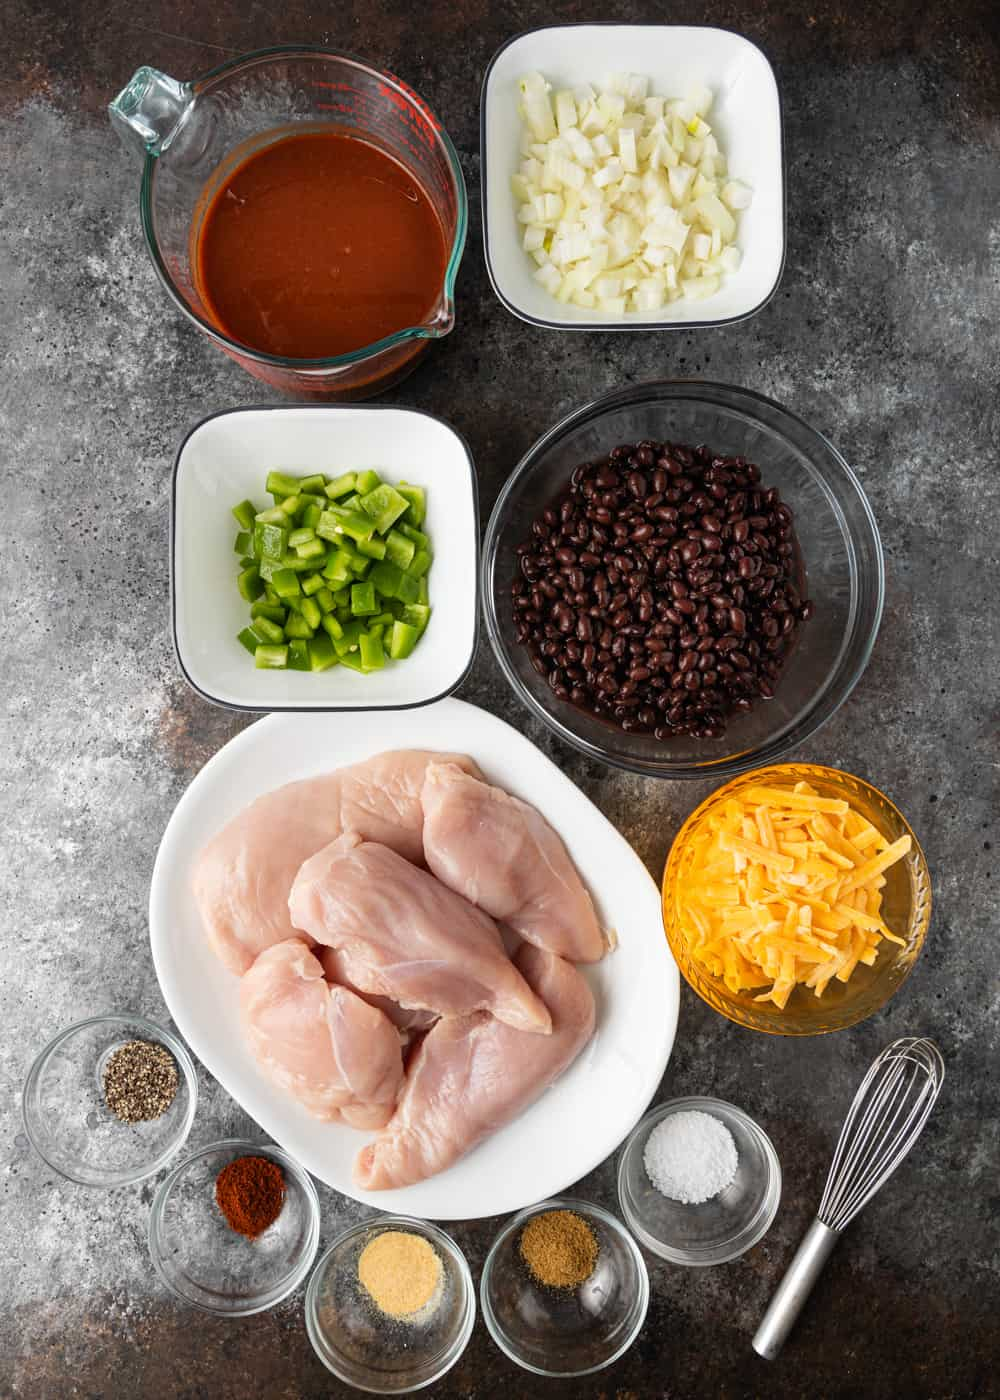 boneless skinless chicken breasts and other ingredients in bowls to make Mexican baked chicken